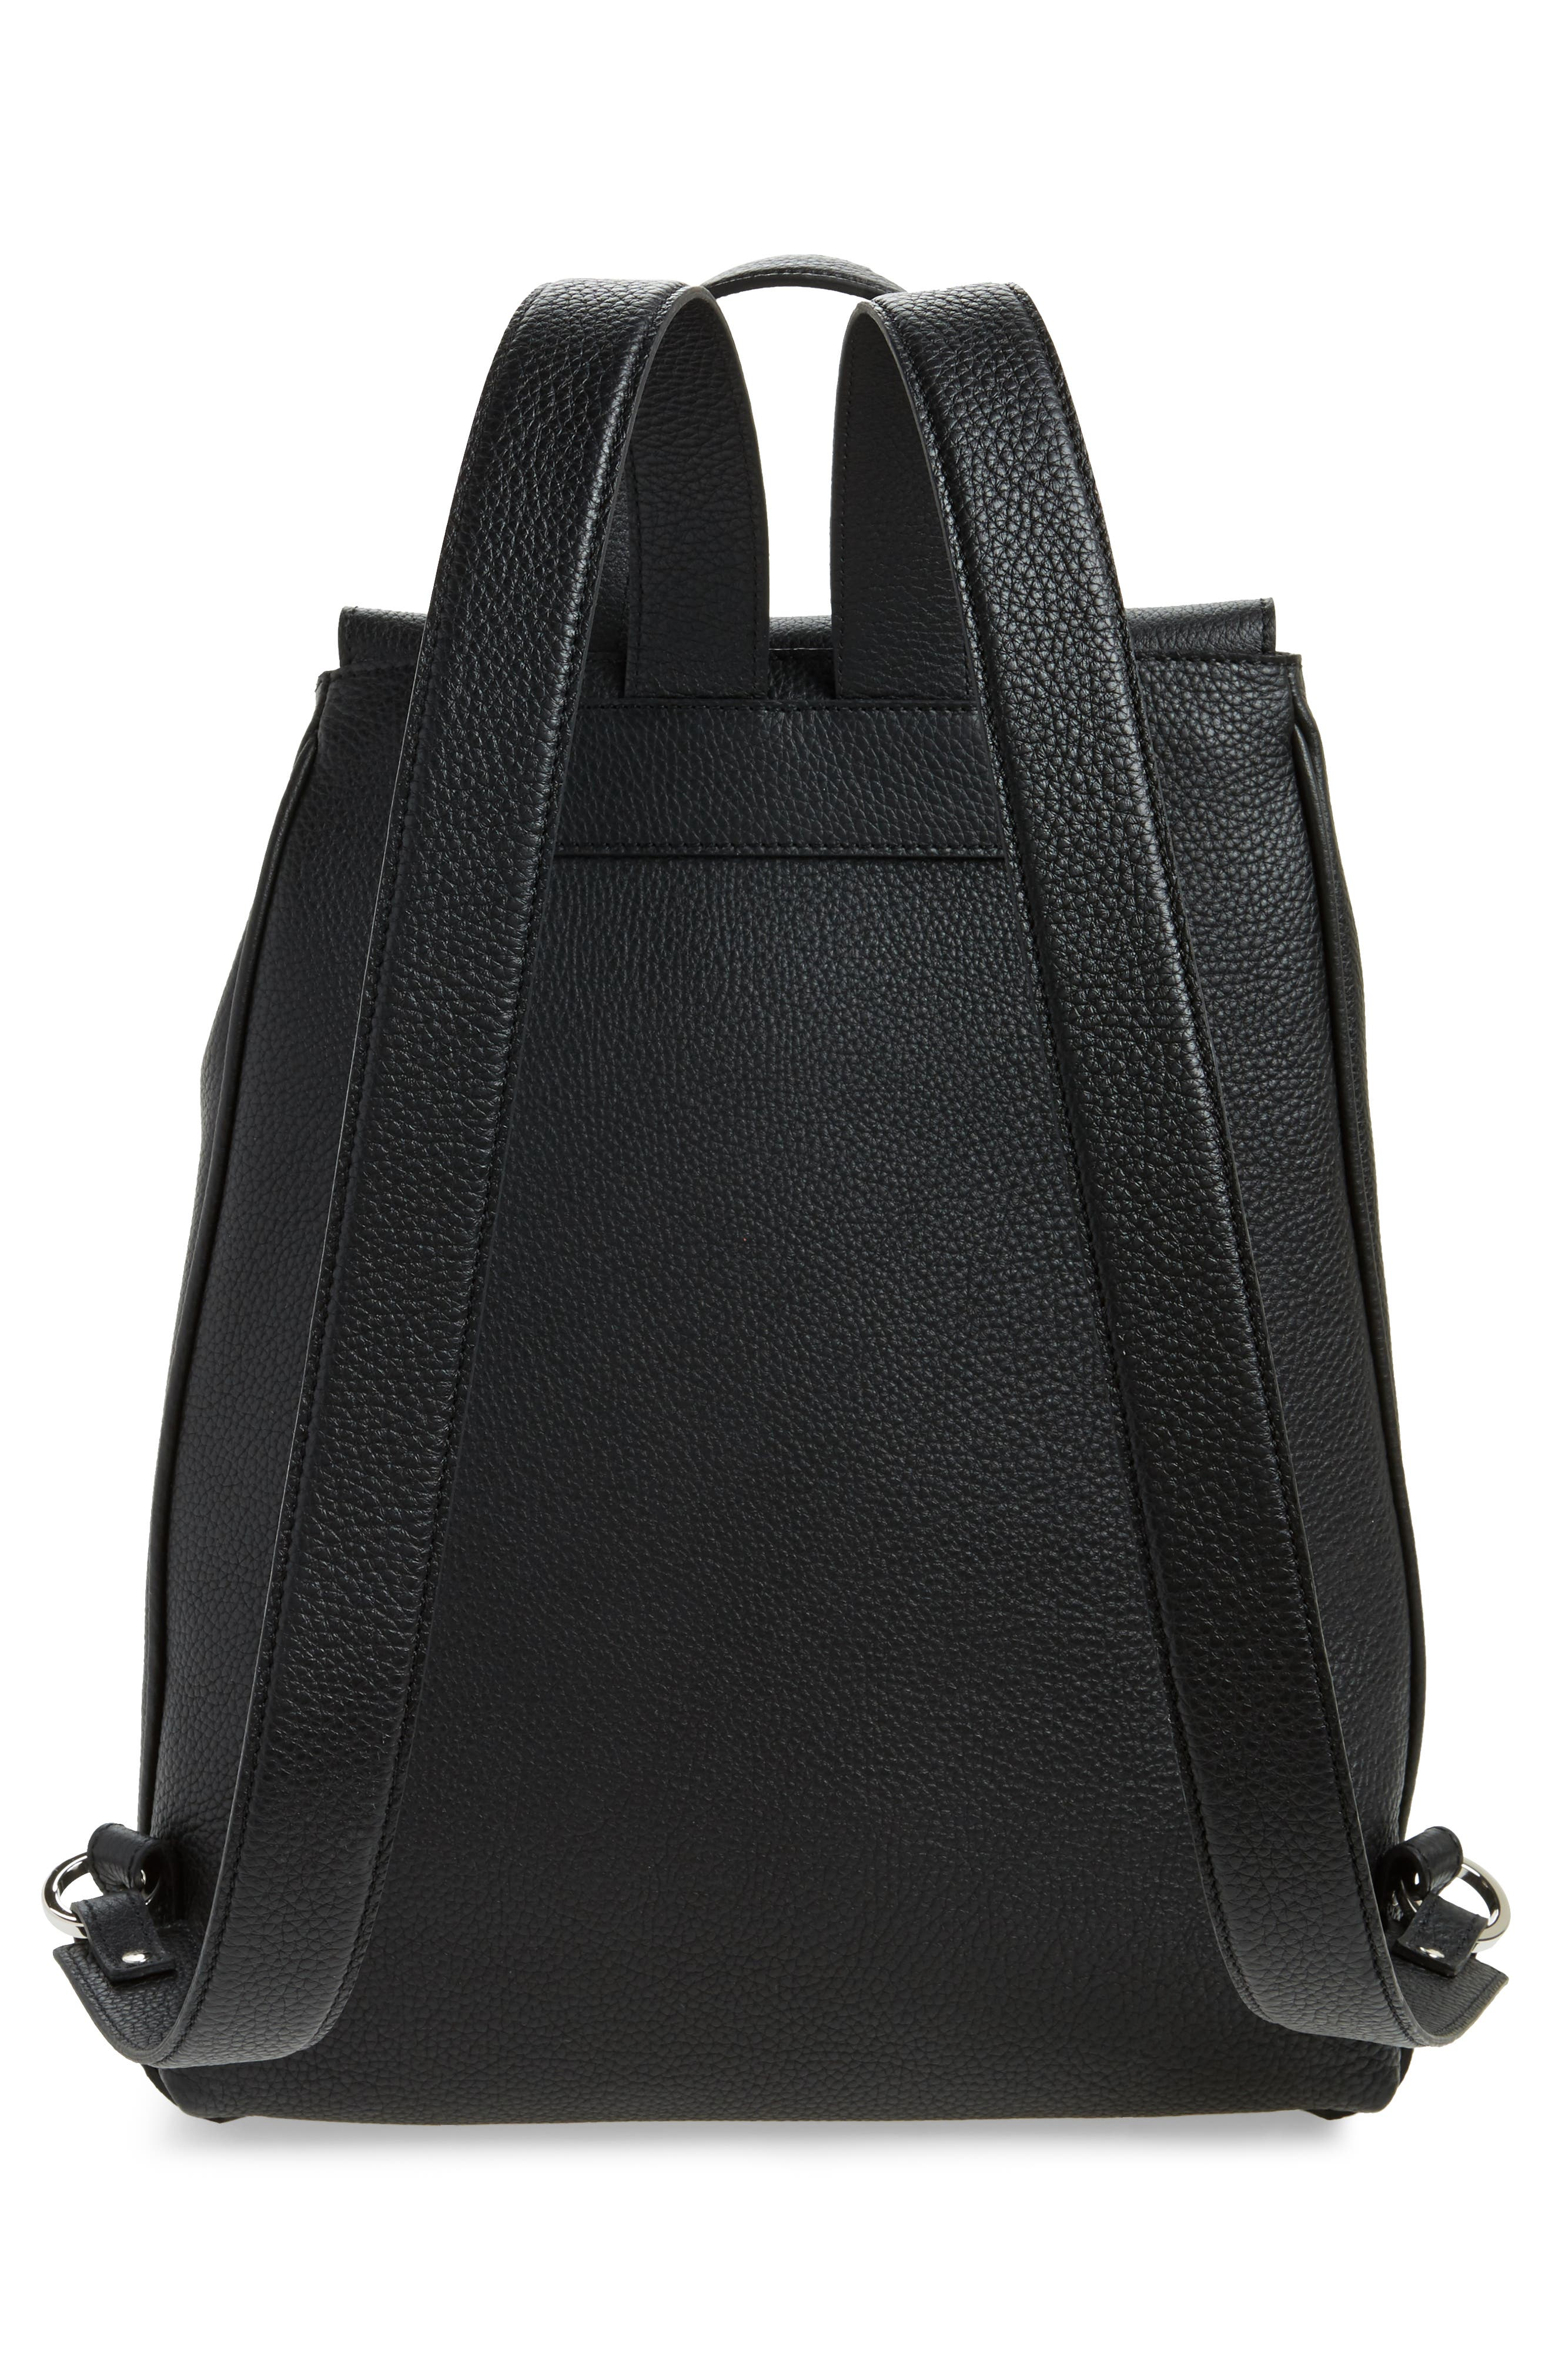 Carmen Cachemire Leather Backpack,                             Alternate thumbnail 3, color,                             001